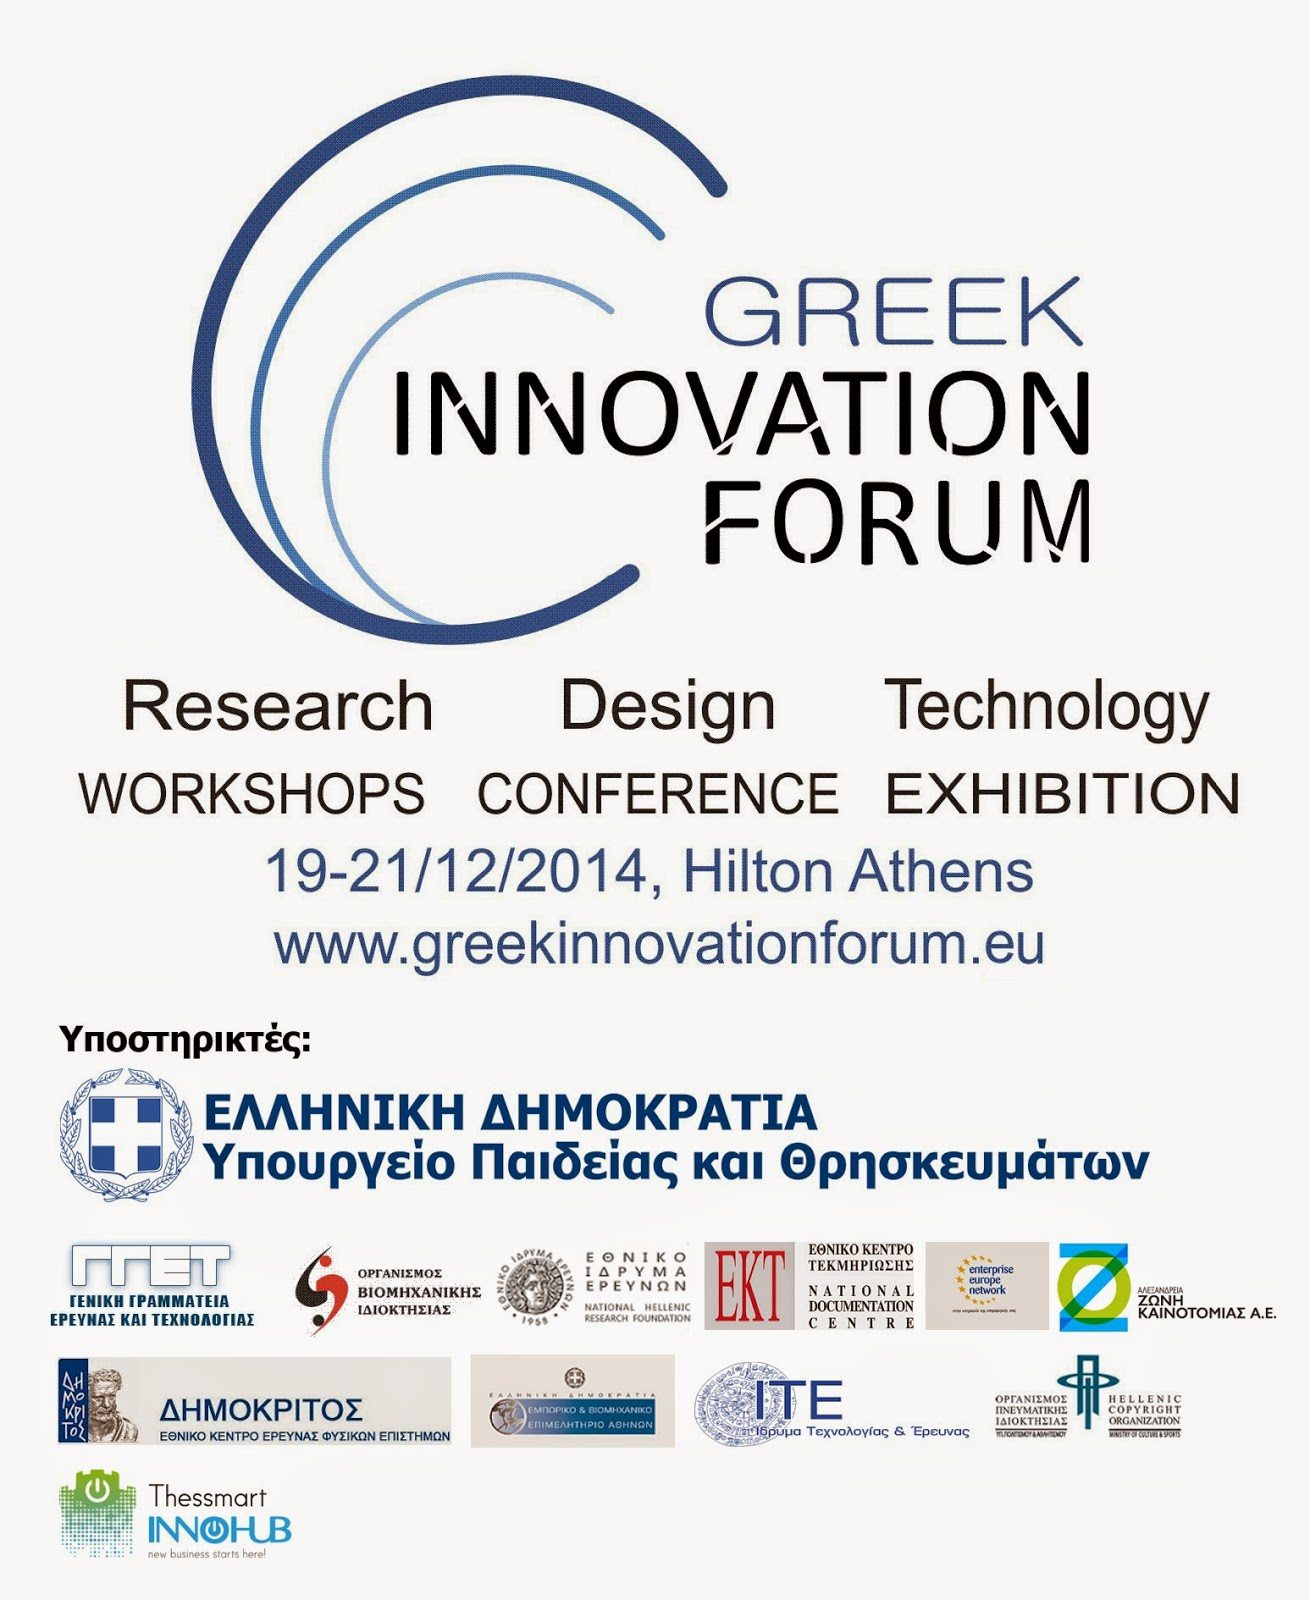 Greek+Innovation+Forum+13,1x16+V6